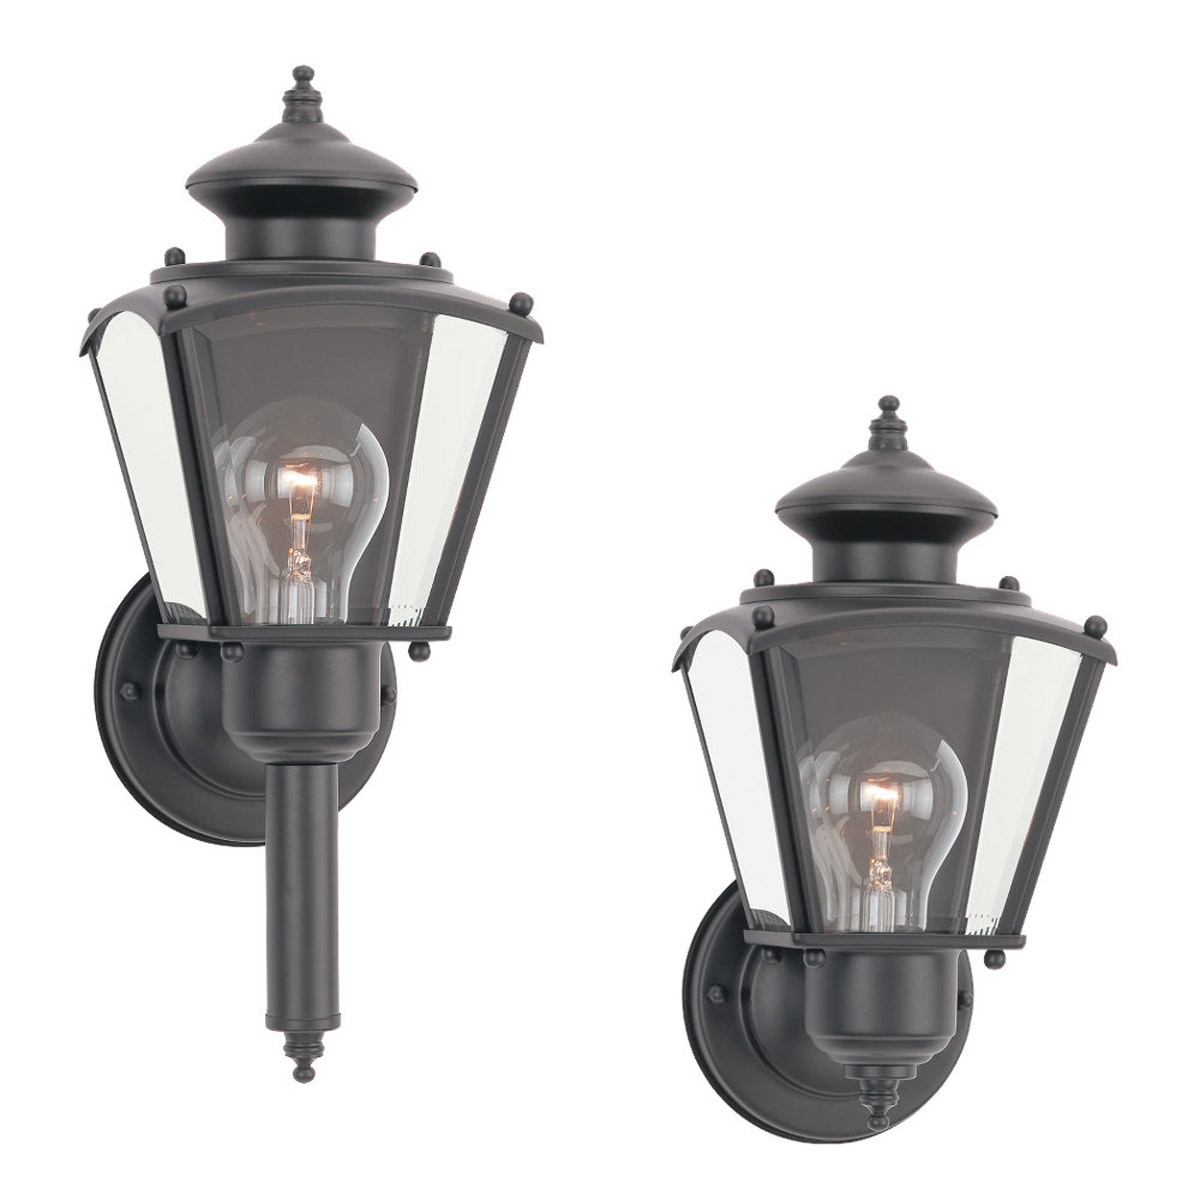 Sea Gull Lighting New Castle 1 Light Outdoor Wall Lantern in Black 8503-12 photo